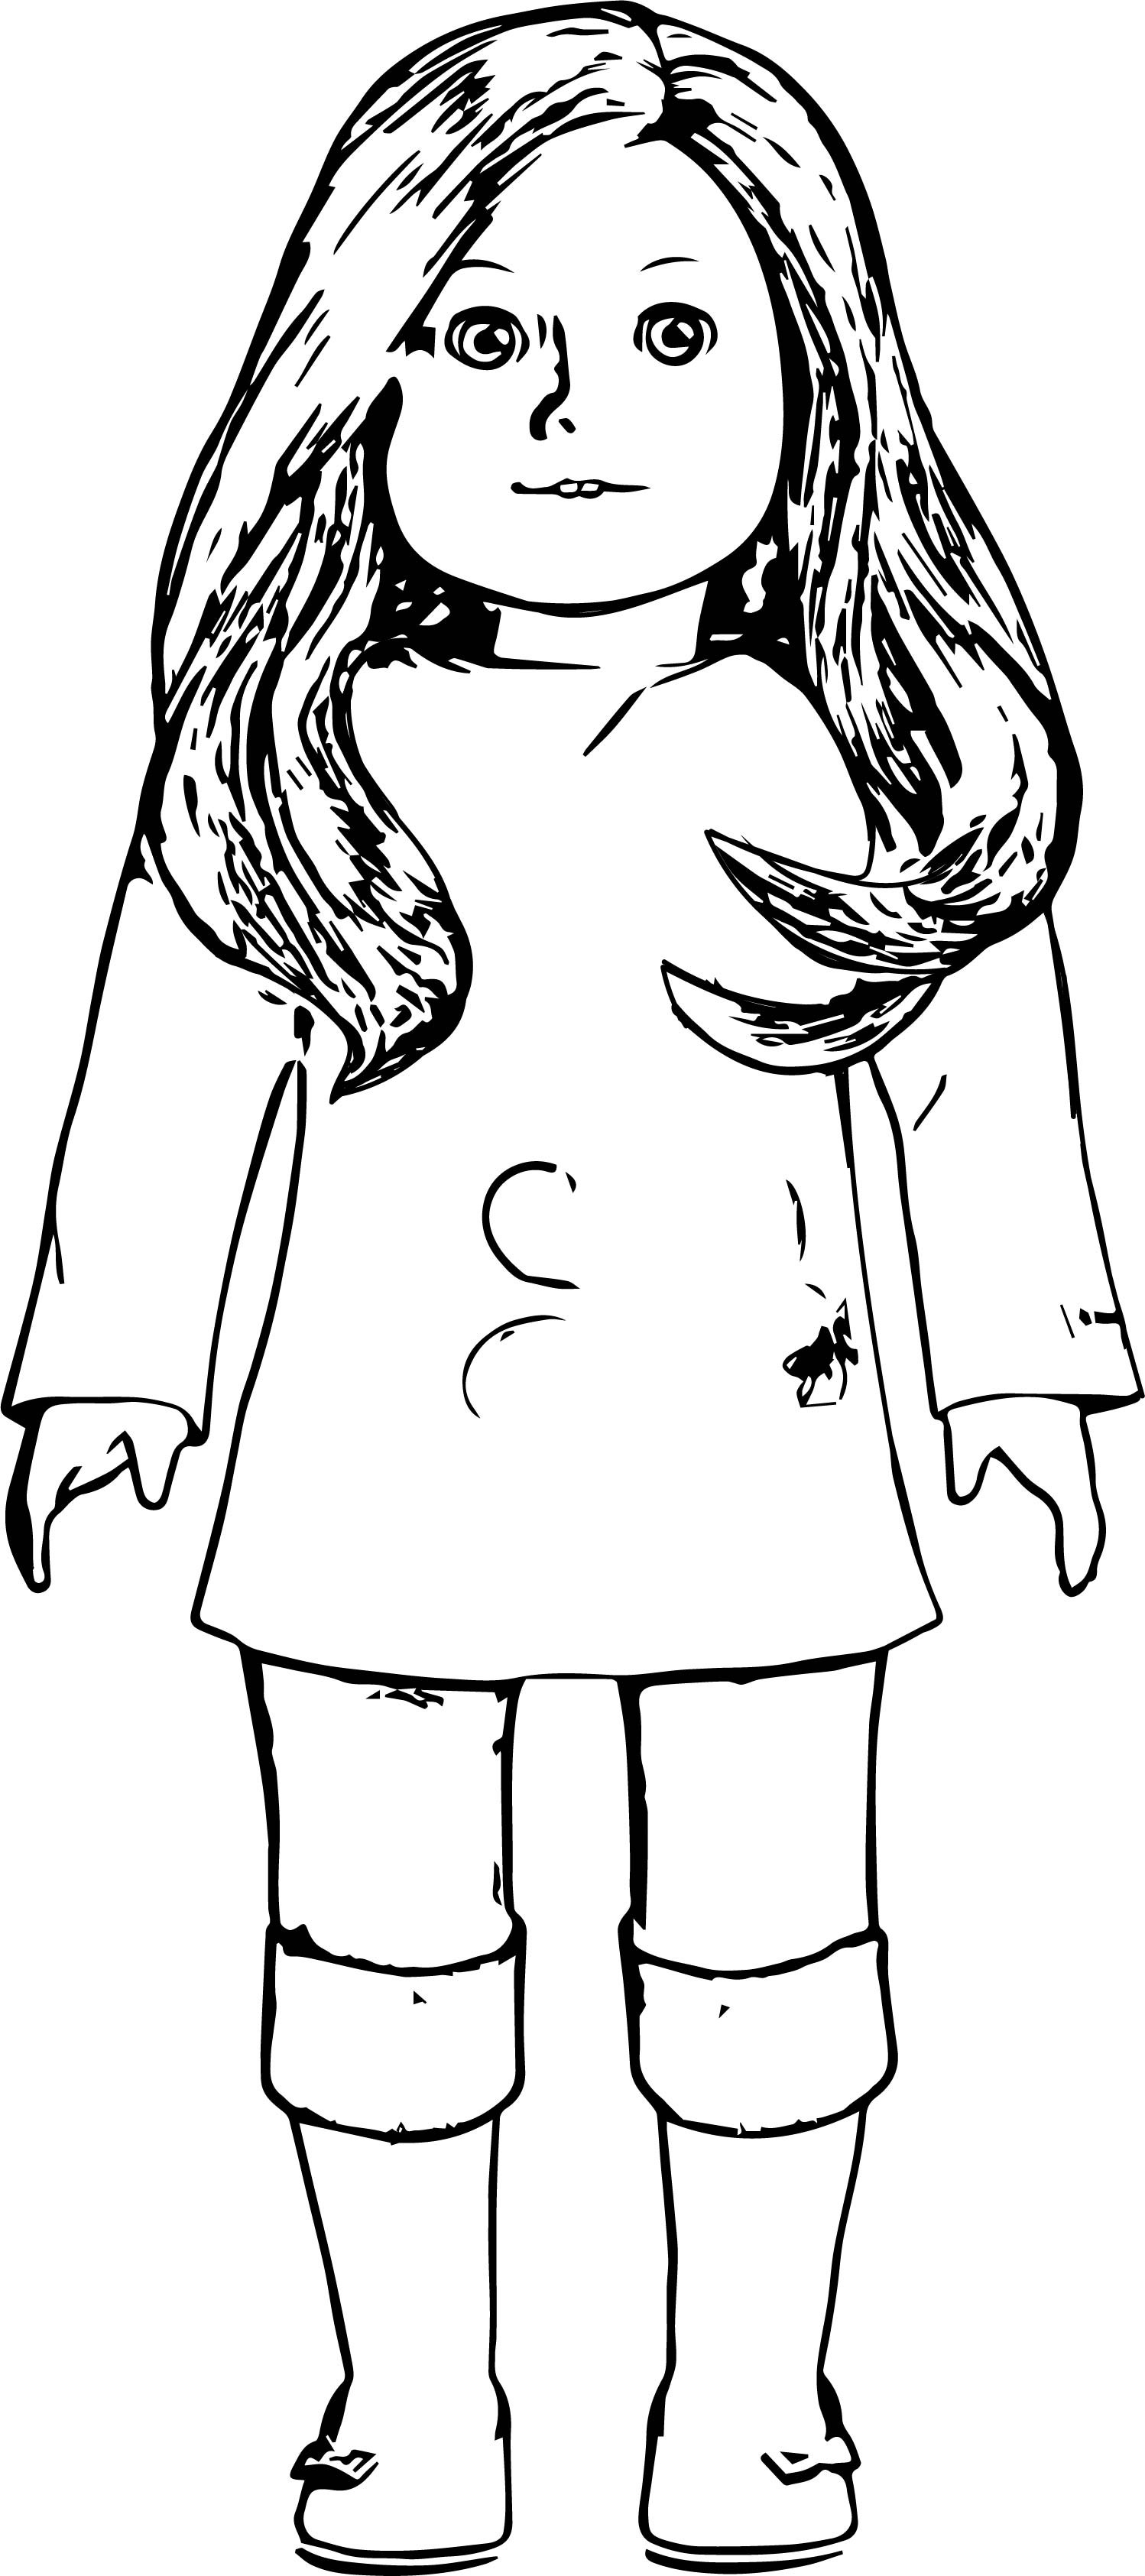 free girl coloring pages to print american girl coloring pages best coloring pages for kids coloring free pages to girl print